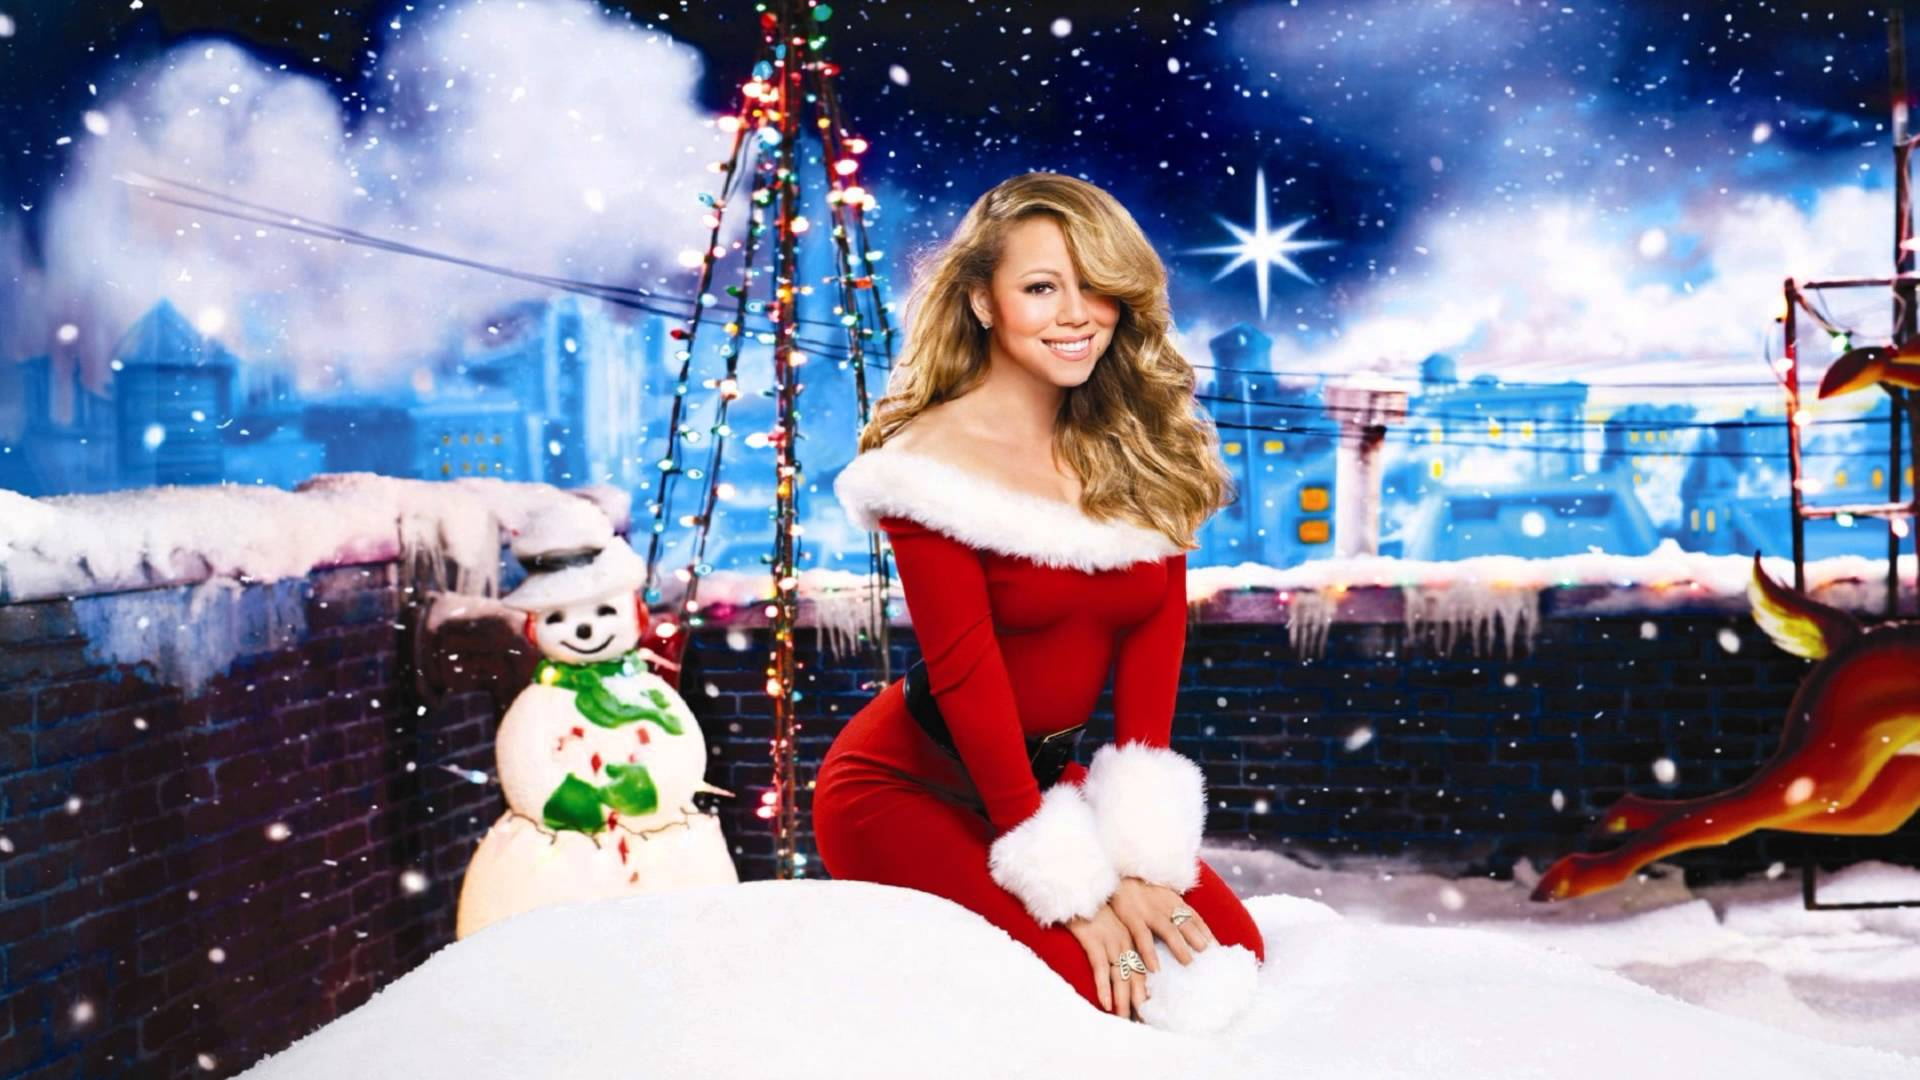 Youtube Mariah Carey Christmas.6 Of The Best Christmas Songs Sung By Women For Your Holiday